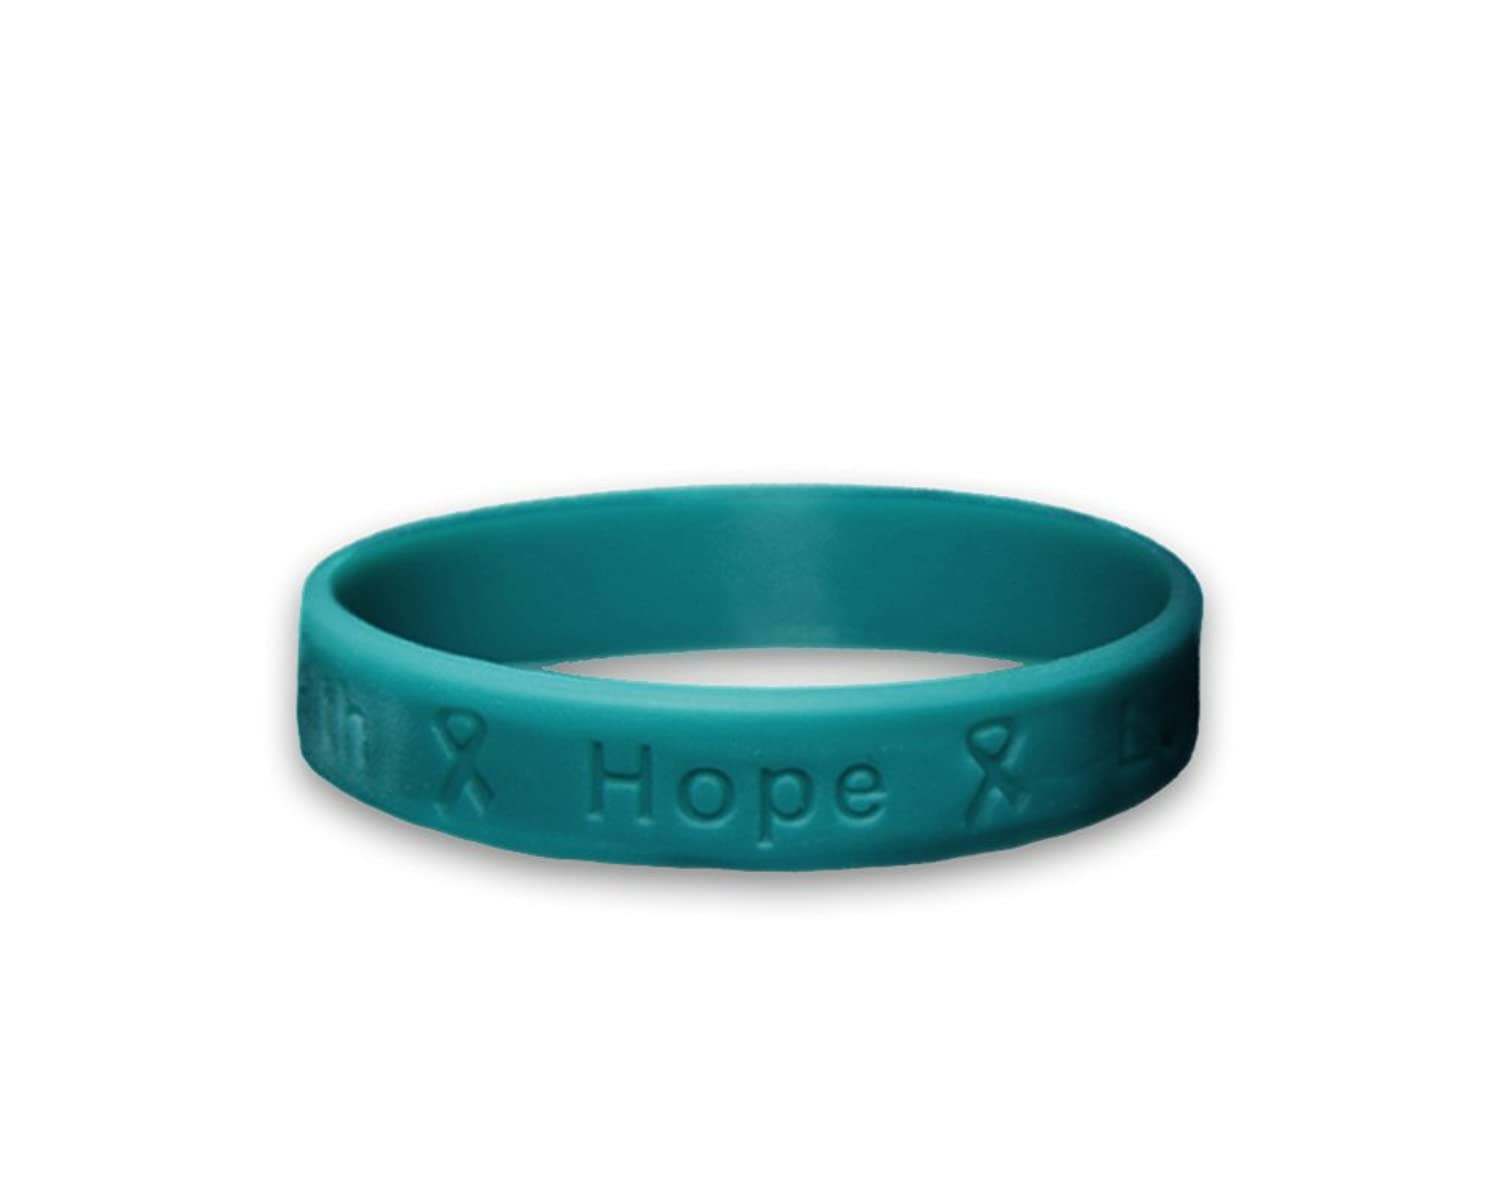 home bracelet accesskeyid alloworigin myasthenia disposition gravis